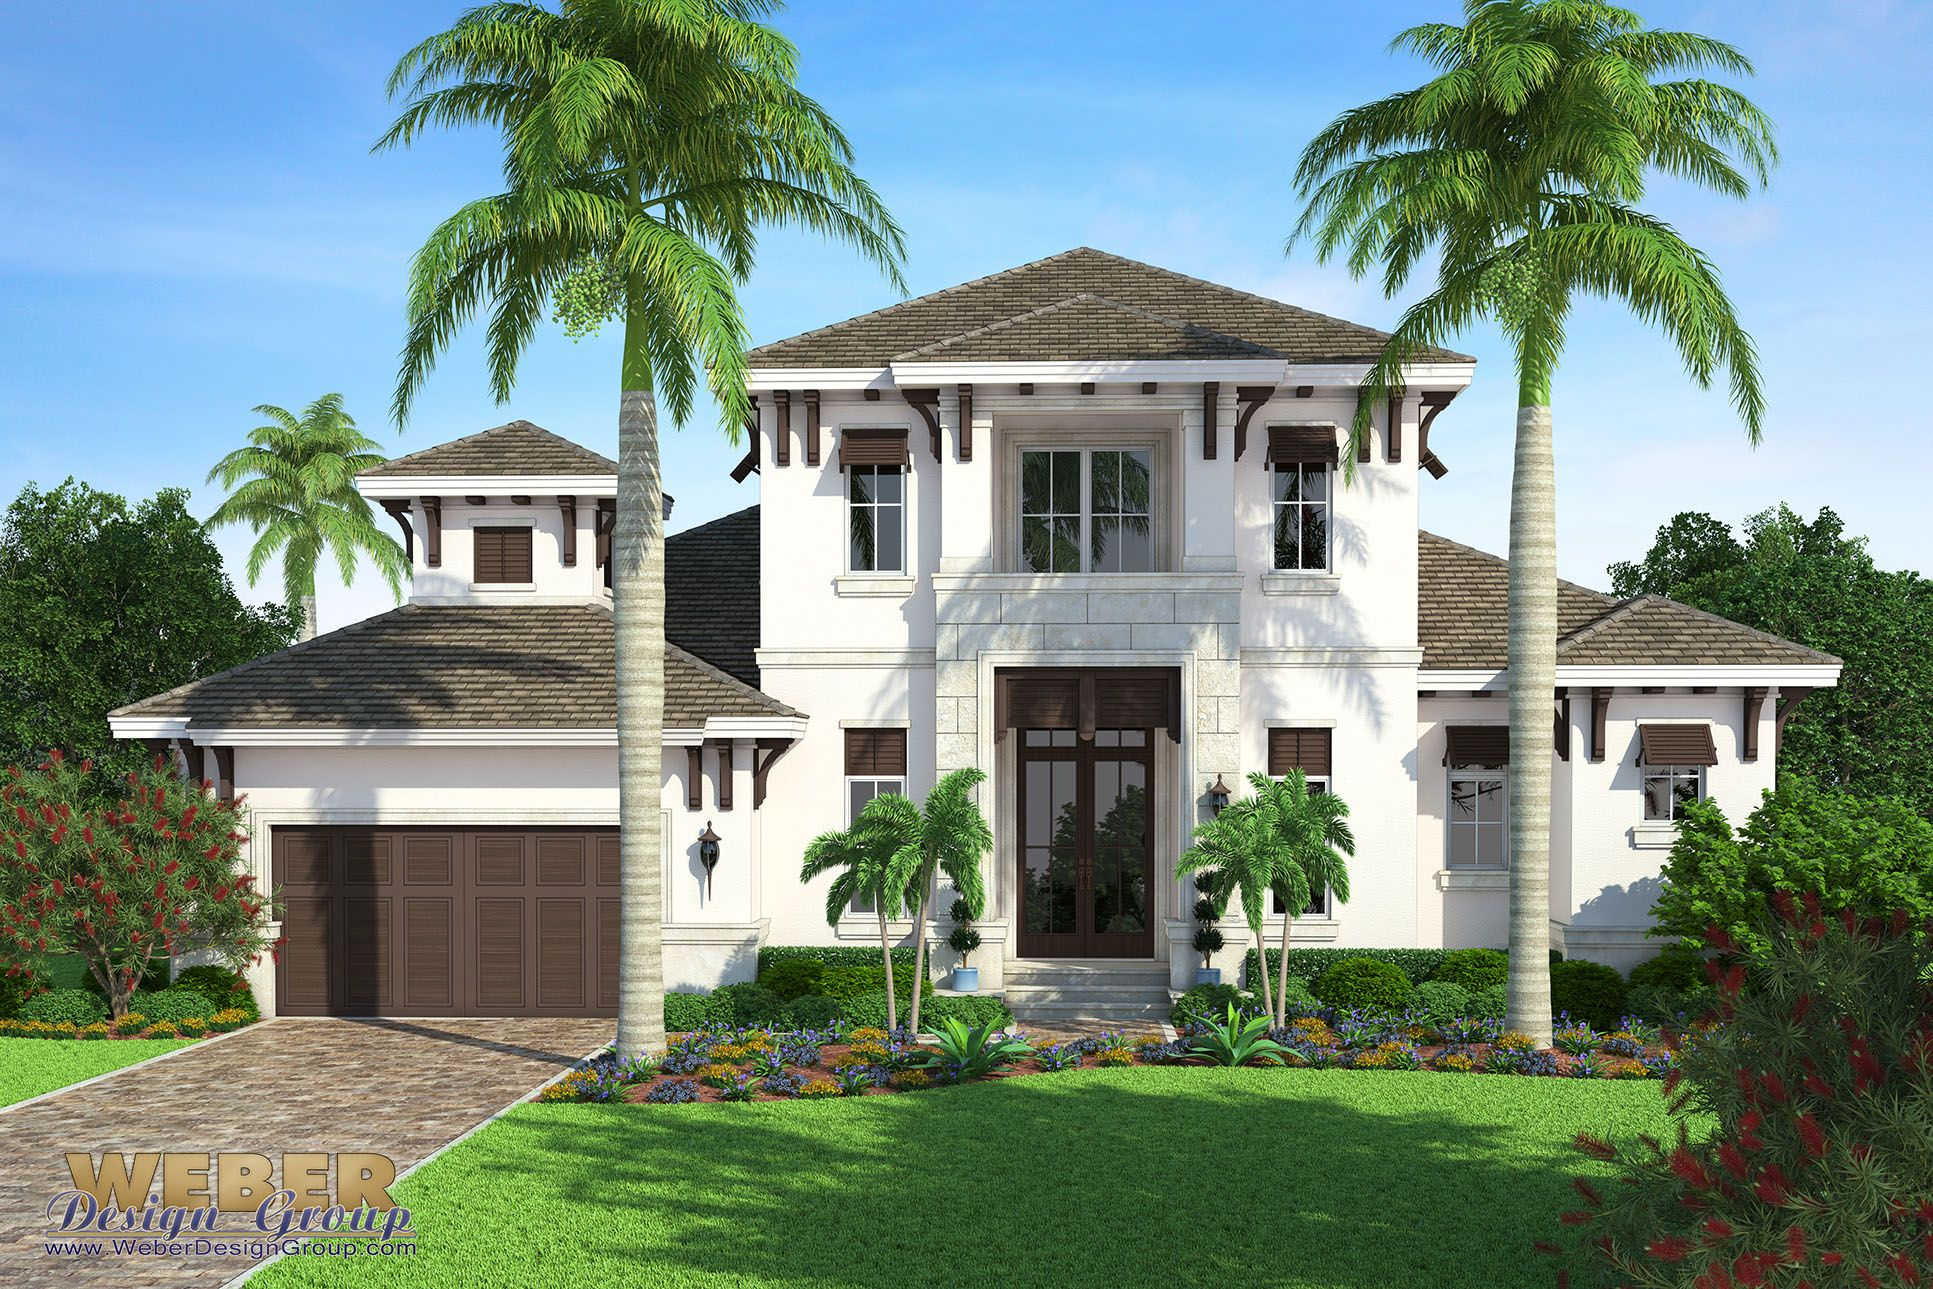 Florida House Plans Florida Style Home Floor Plans Coastal House Plans Florida House Plans Mediterranean Style House Plans